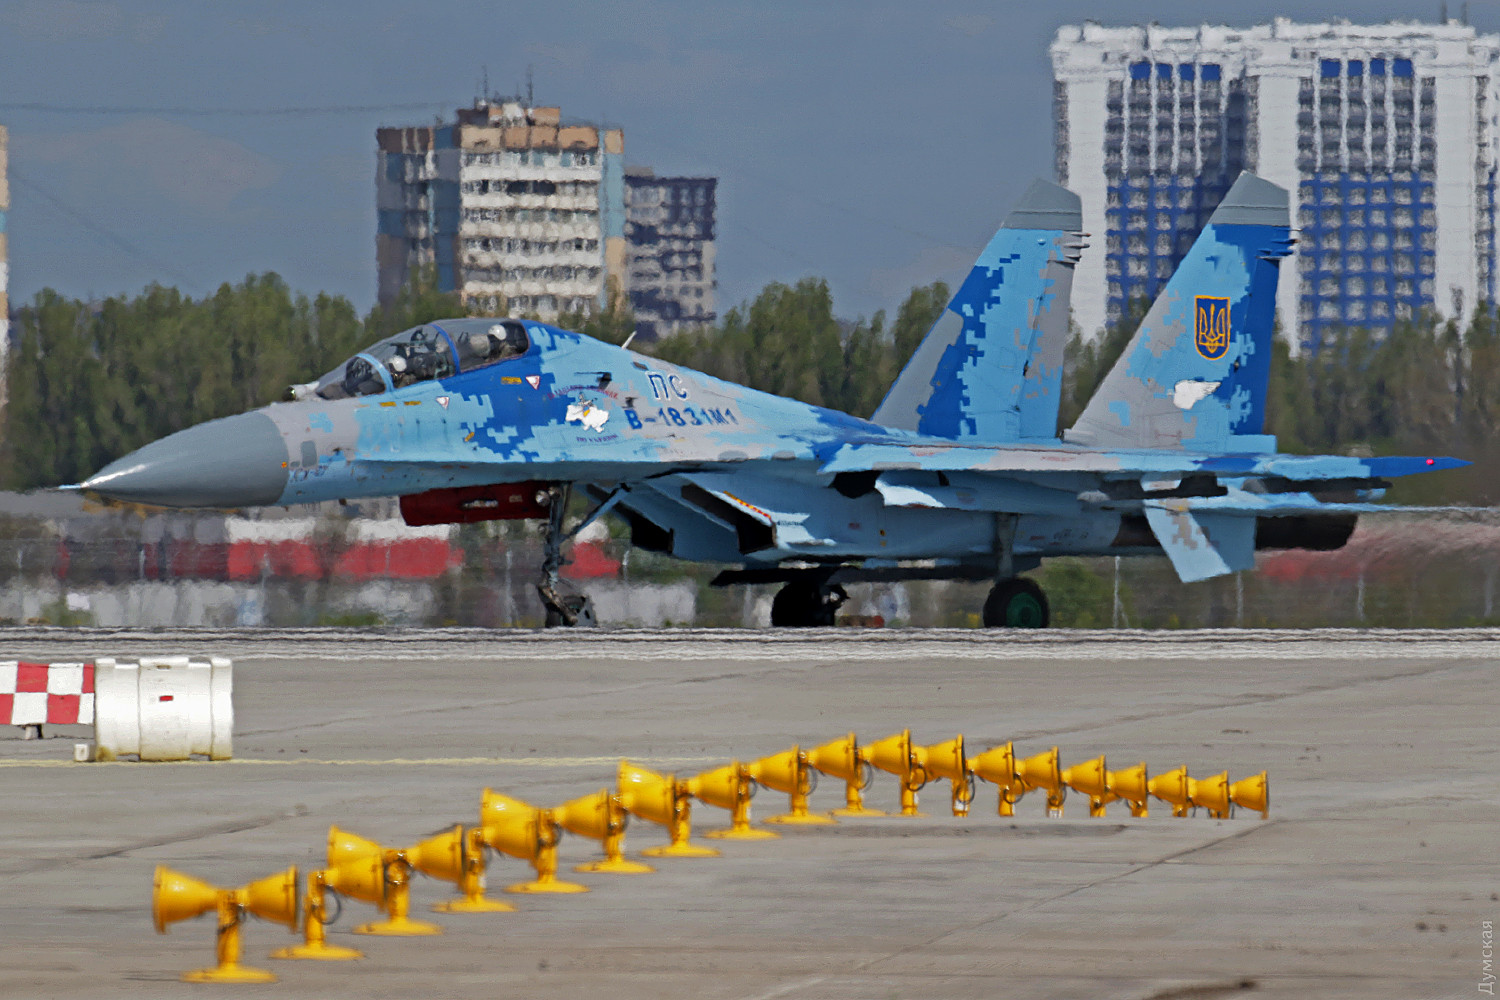 http://forums.airforce.ru/attachments/matchast/98820d1588059295-95189.jpg/